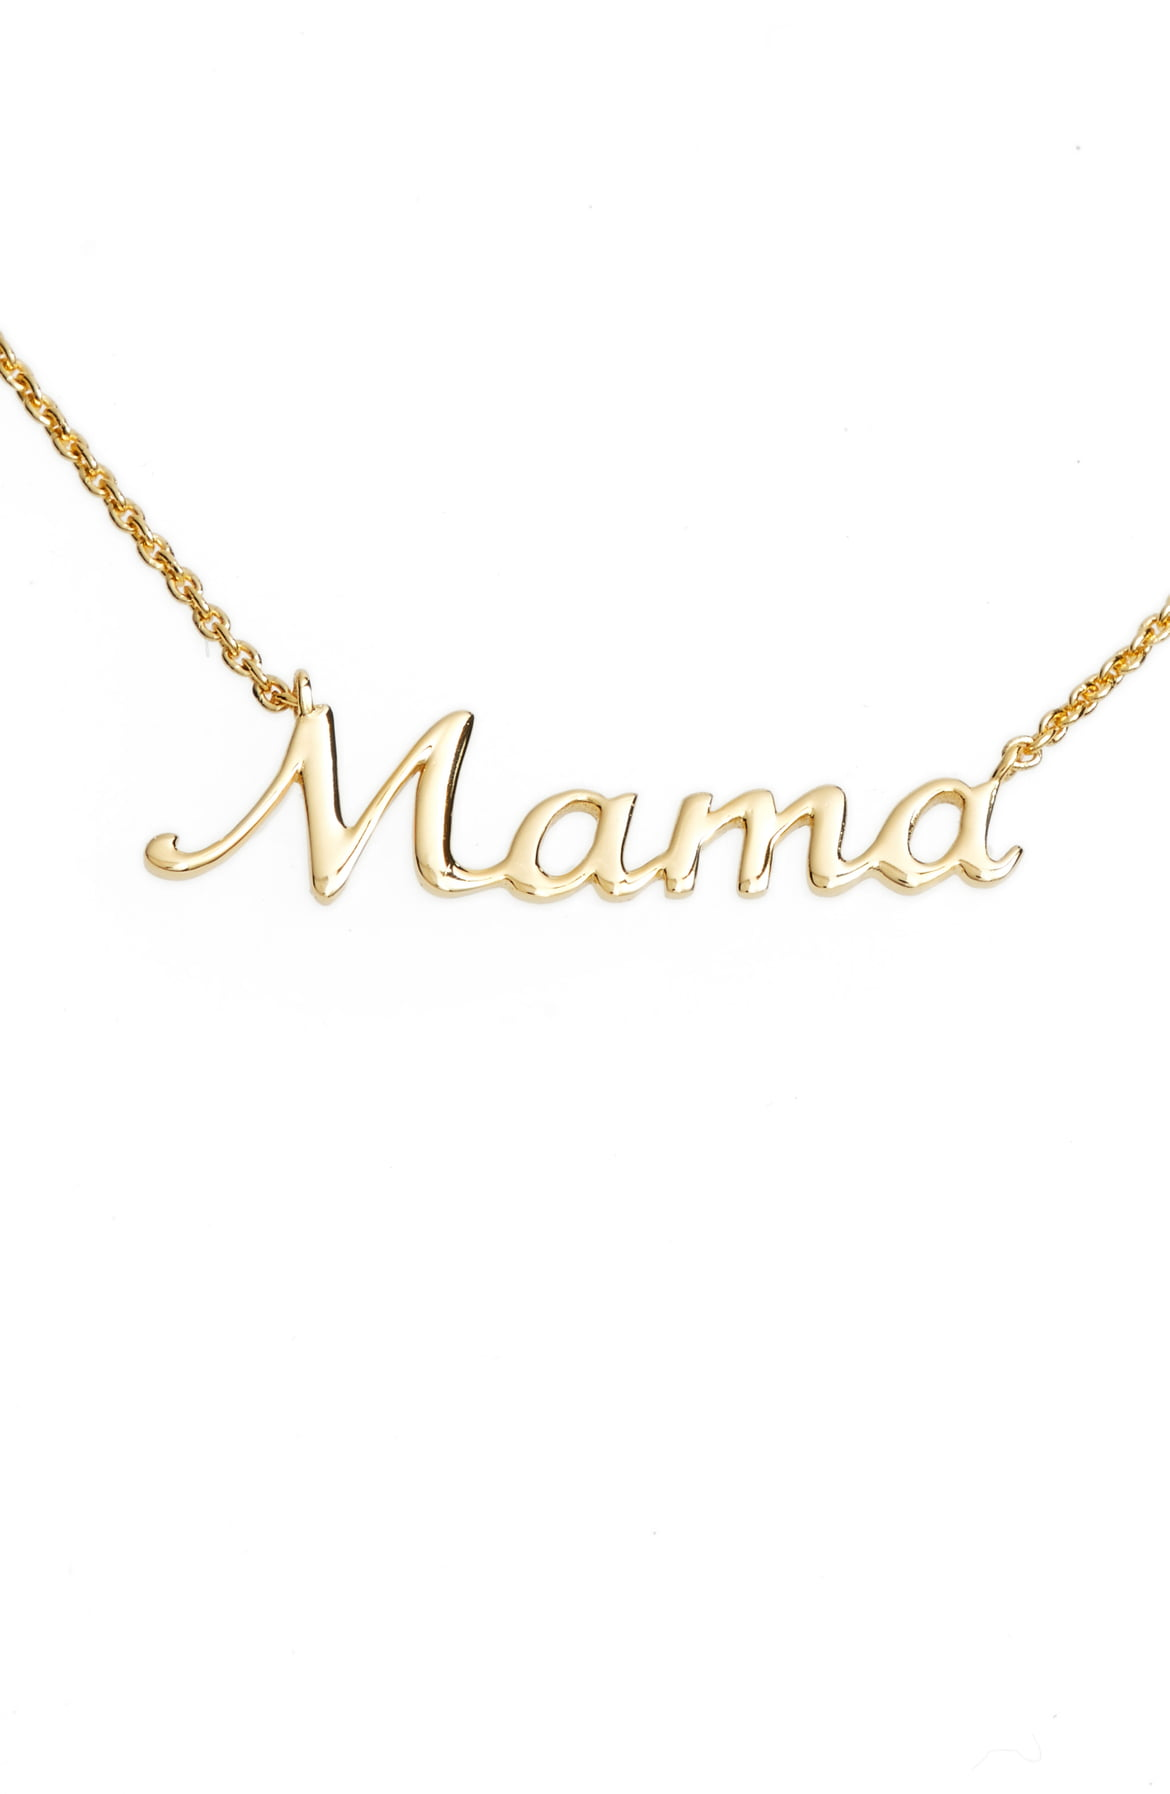 Mother's Day will be here before you know it. Whether you're gunning to be moms favorite child or want to remain the top pick - we've rounded up a handful of gifts for mom that will leverage you into her good graces all year long. Starting with this perfect gift for the mama in your life, this glinting collar necklace is crafted from vermeil and studded with dainty baubles. $68 @ Nordstrom. (Image: Nordstrom)